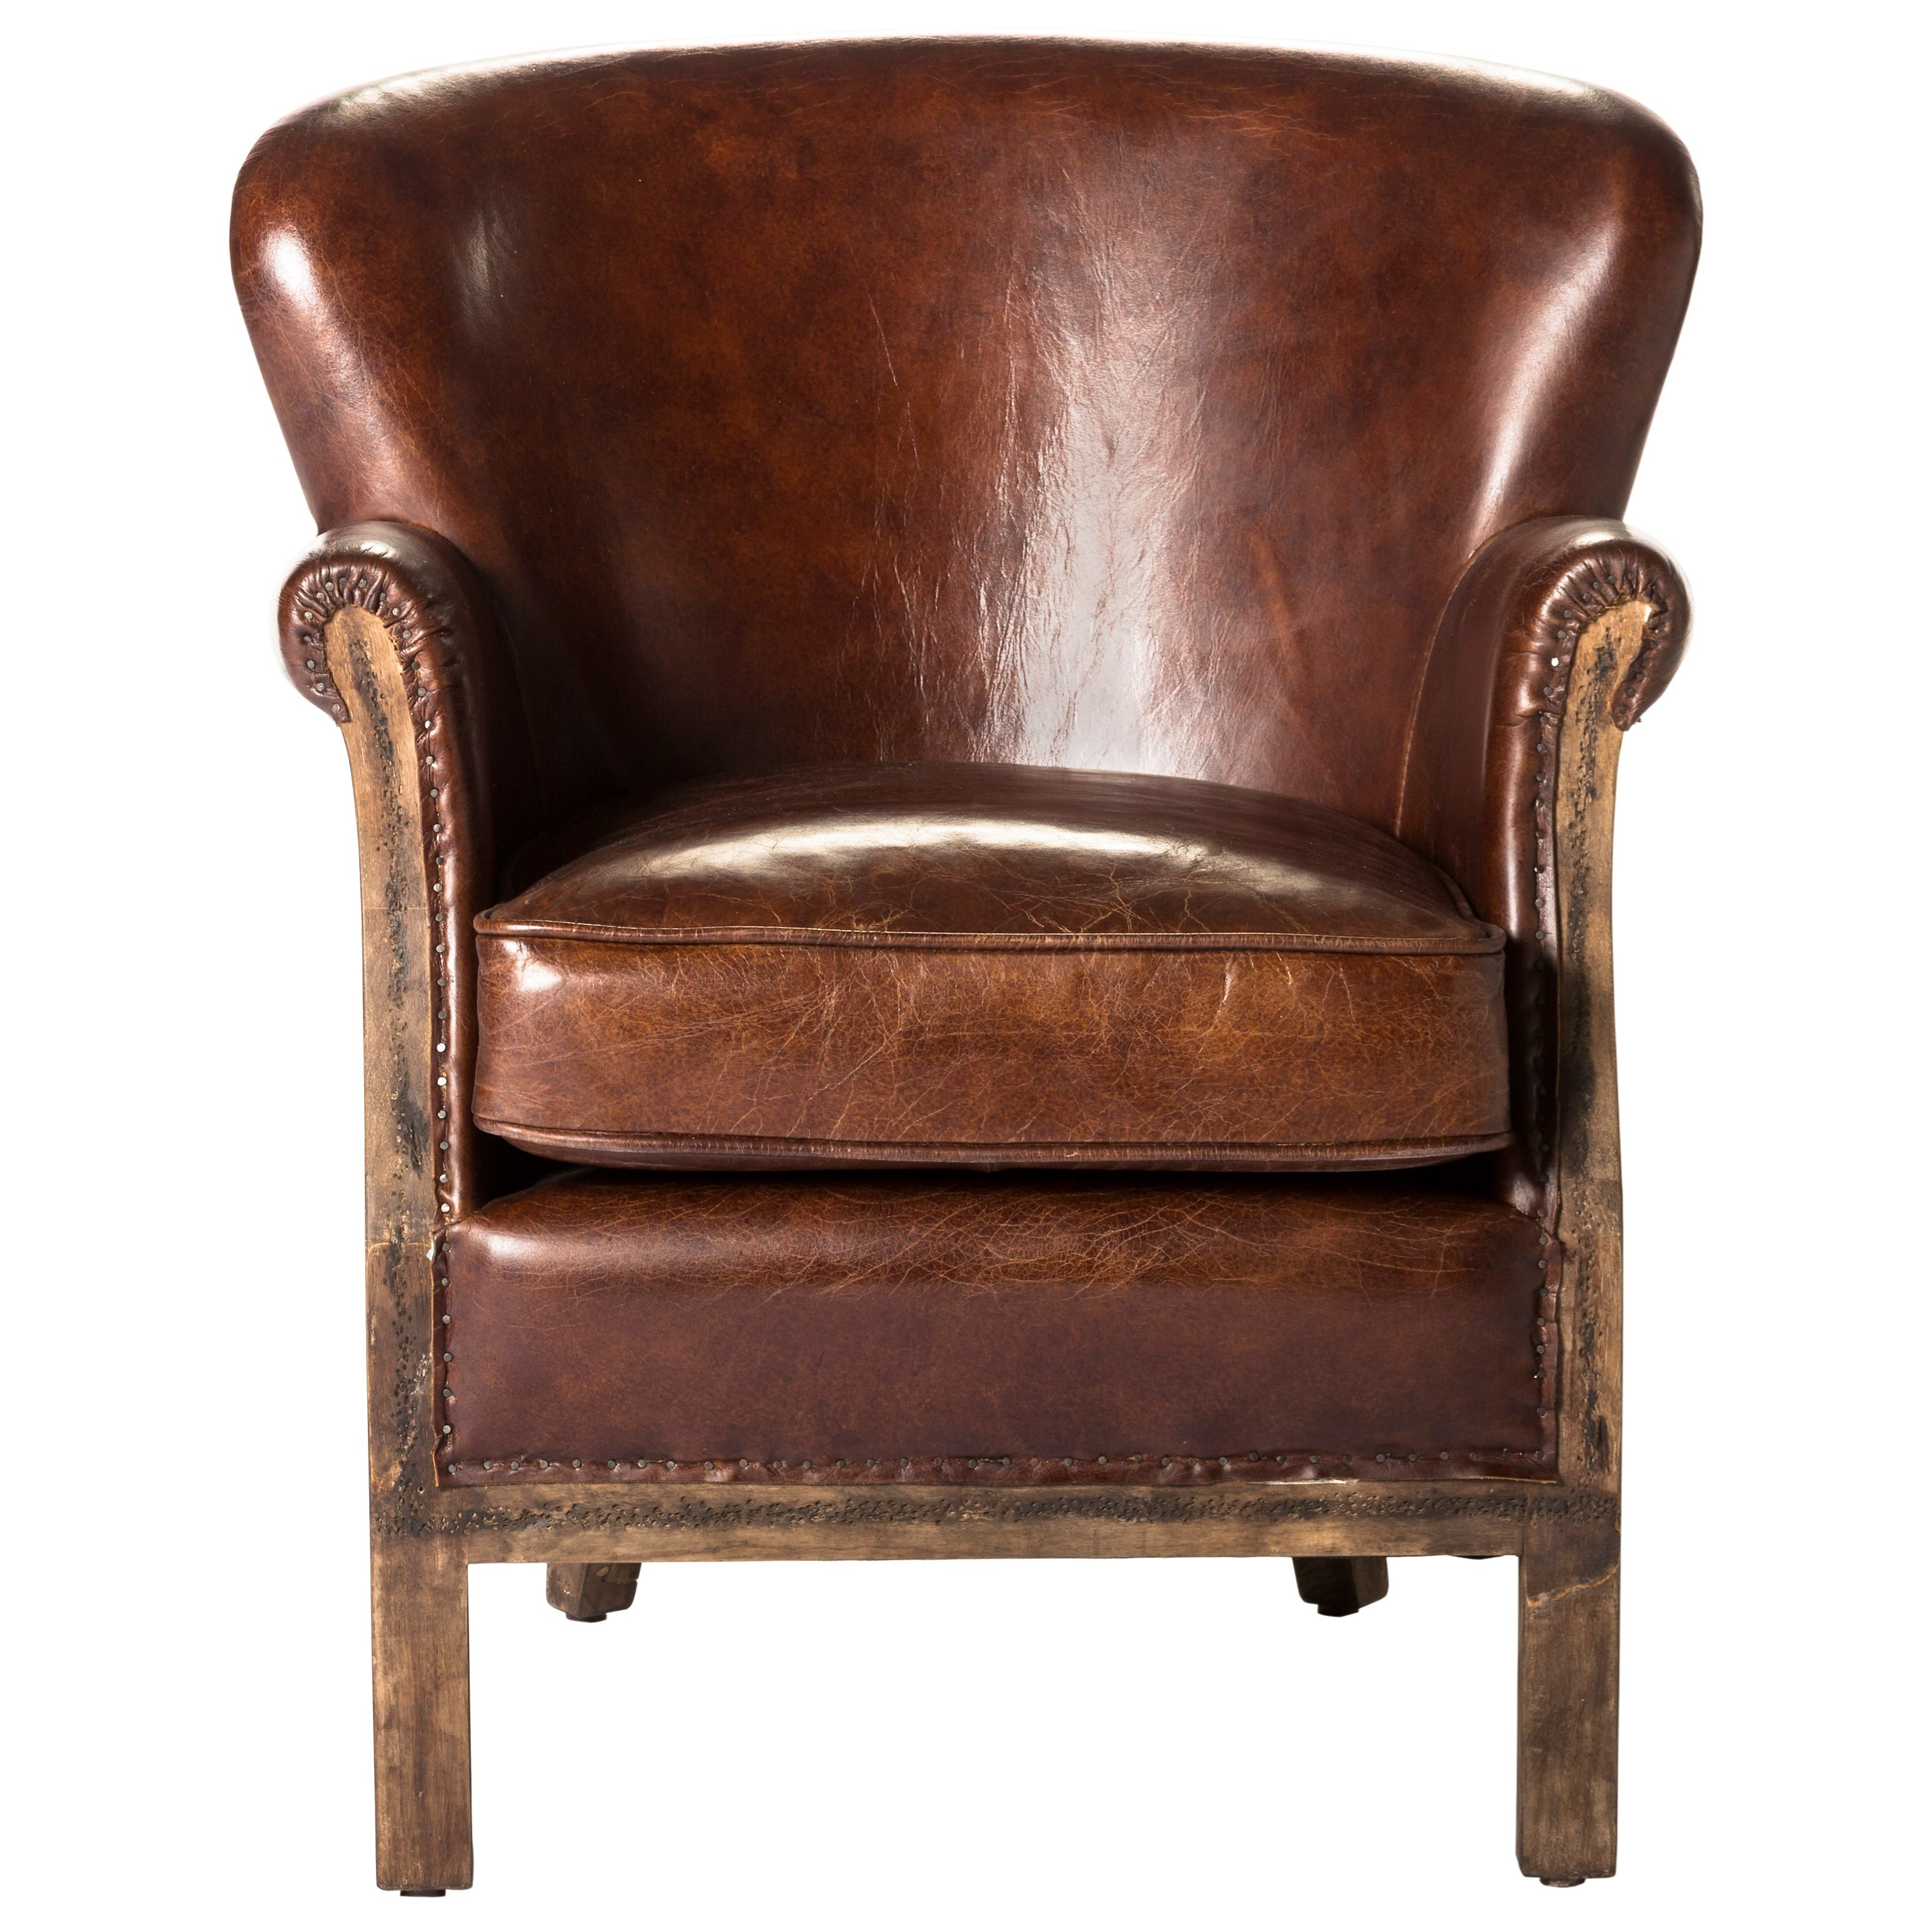 Moe's Home Collection Abbey  Club Chair - Brown - Item Number: PK-1039-20